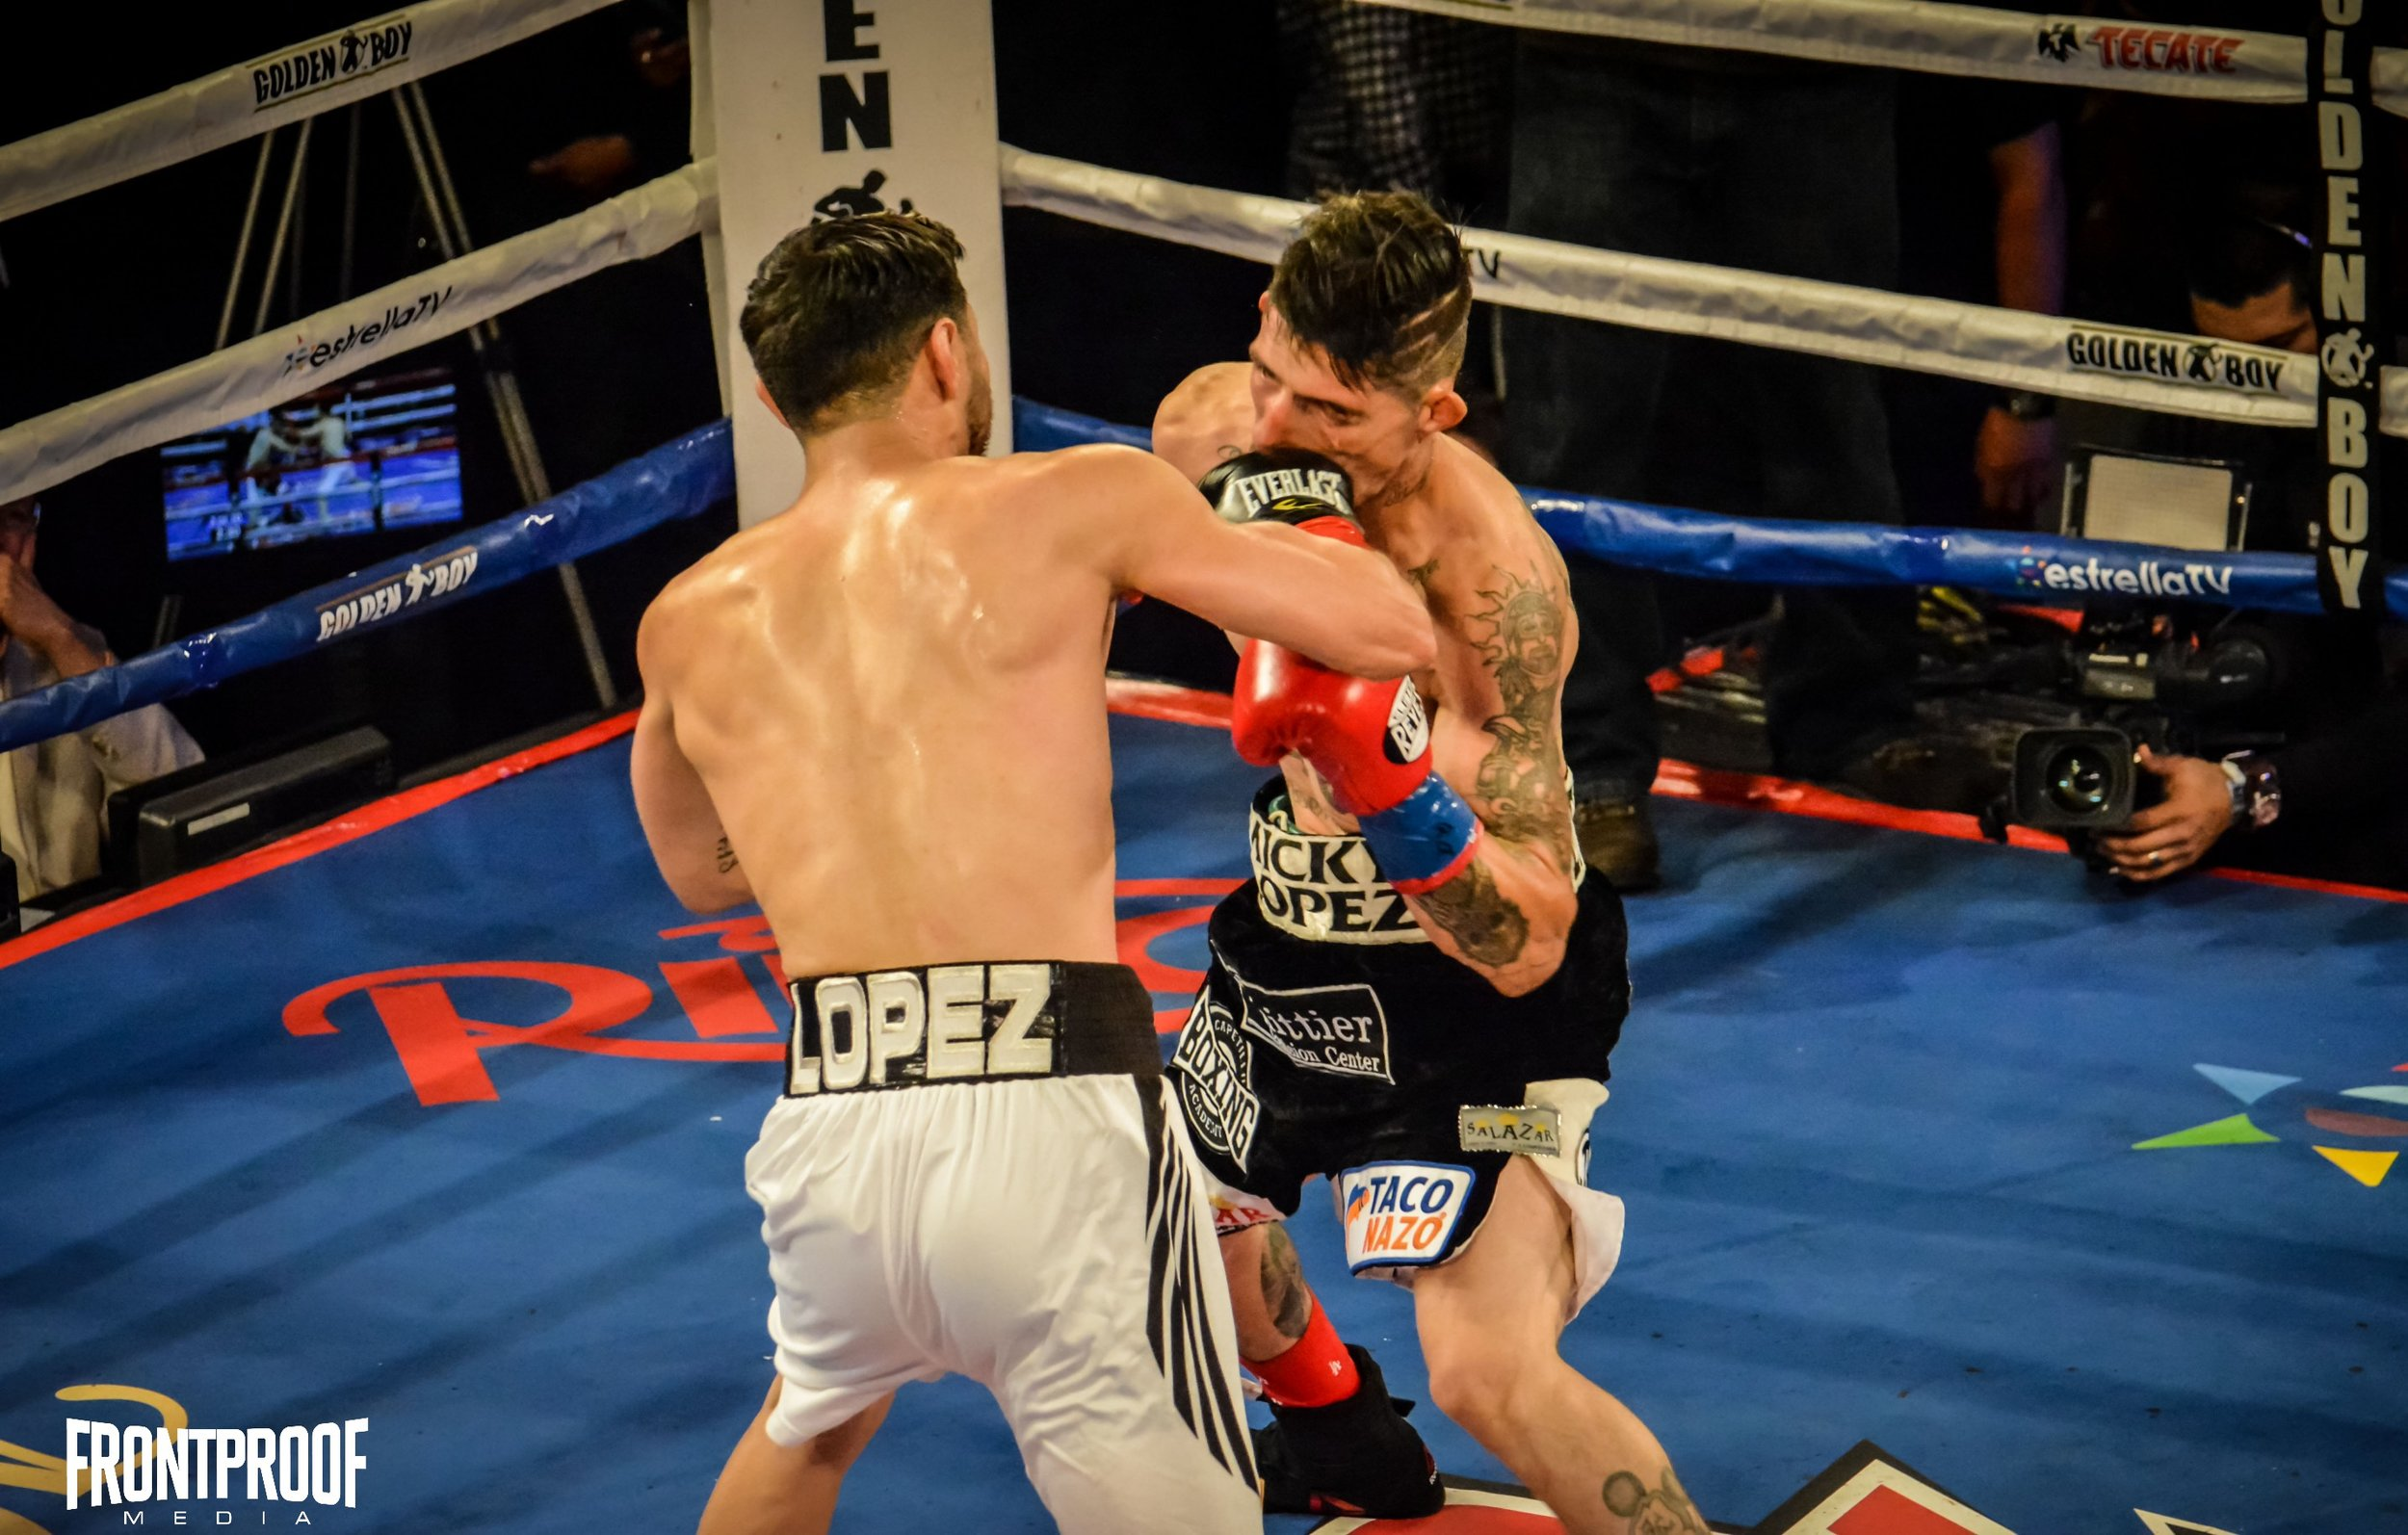 Abraham Lopez connects with a straight right on Sergio Lopez on Friday, December 2, 2016 in Los Angeles. Photo: Cynthia Saldaña/FrontProof Media